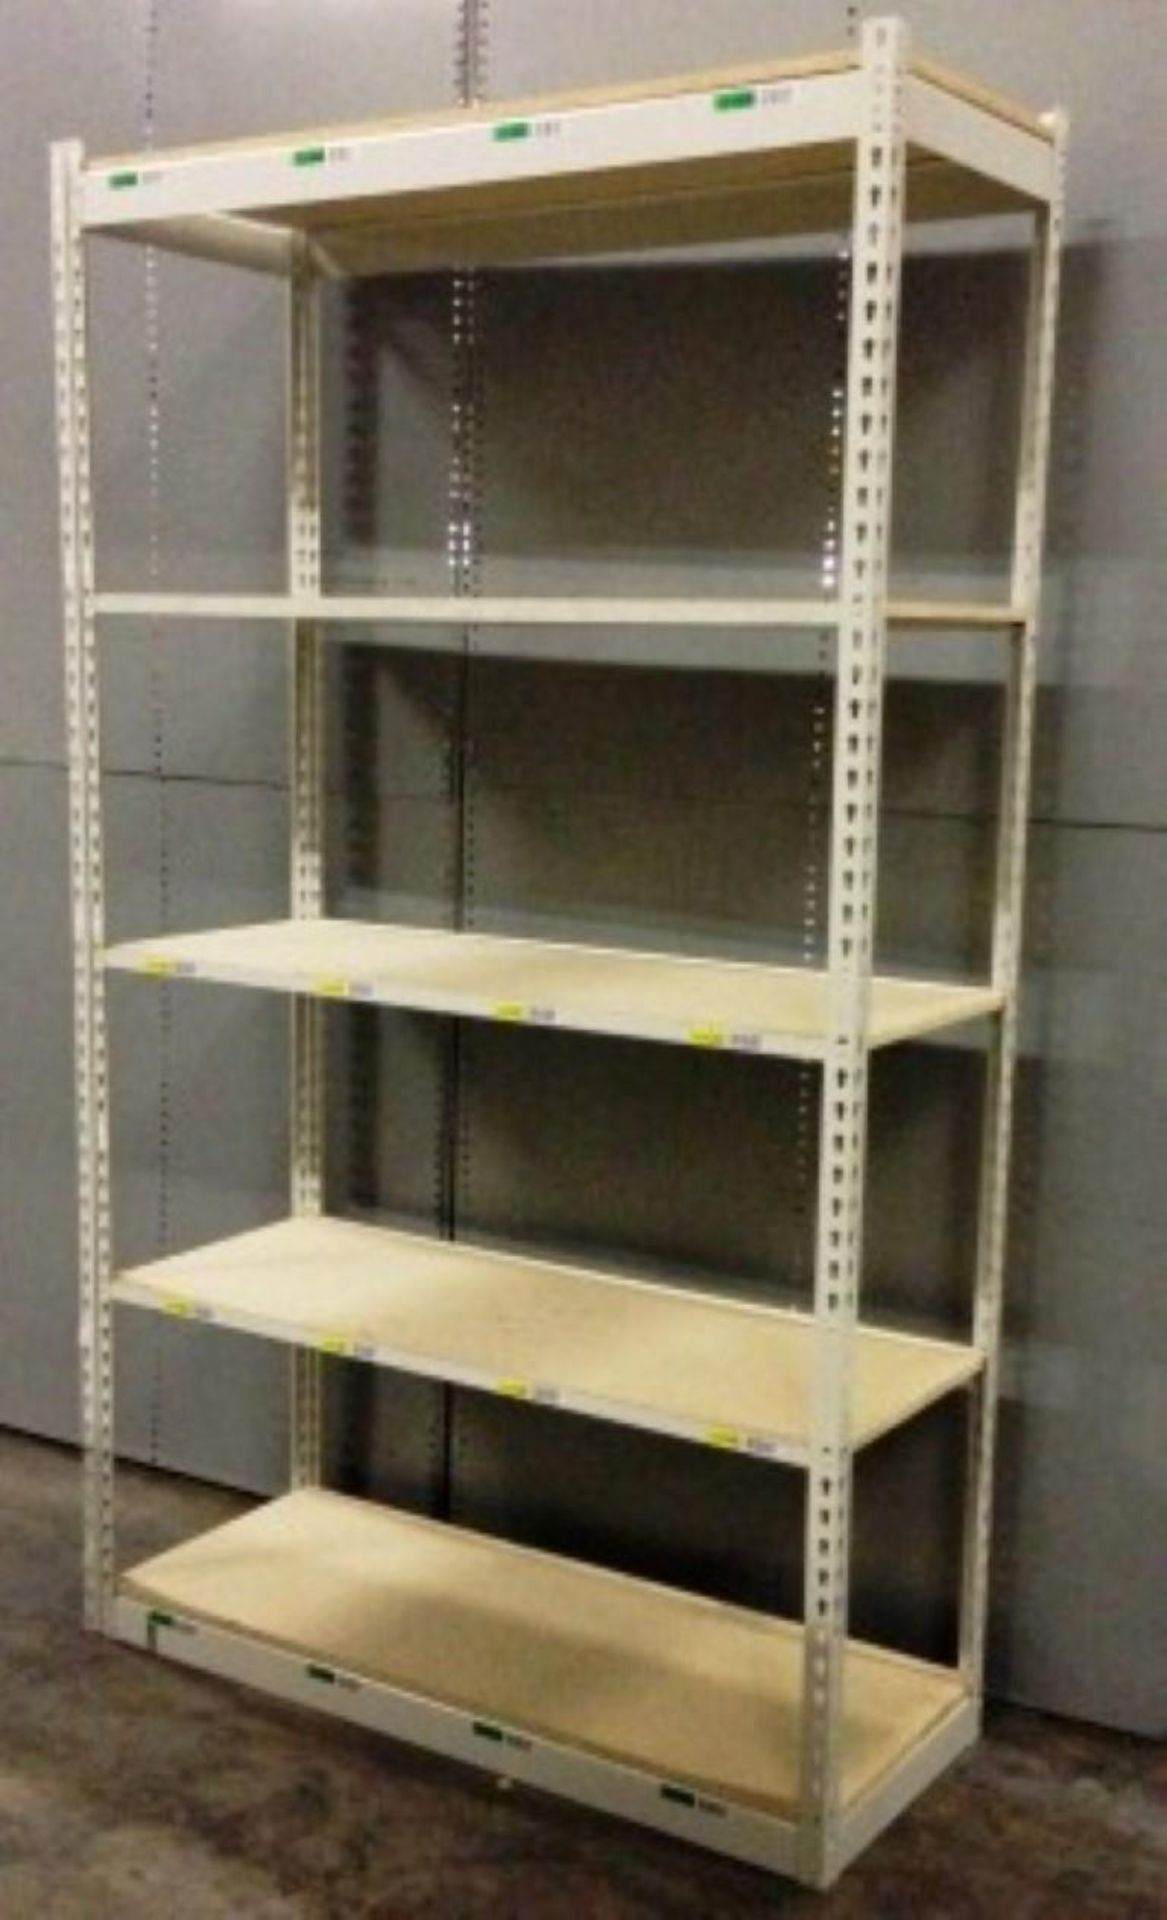 ONE LOT OF 30 SECTIONS OF RIVETIER INDUSTRIAL SHELVING